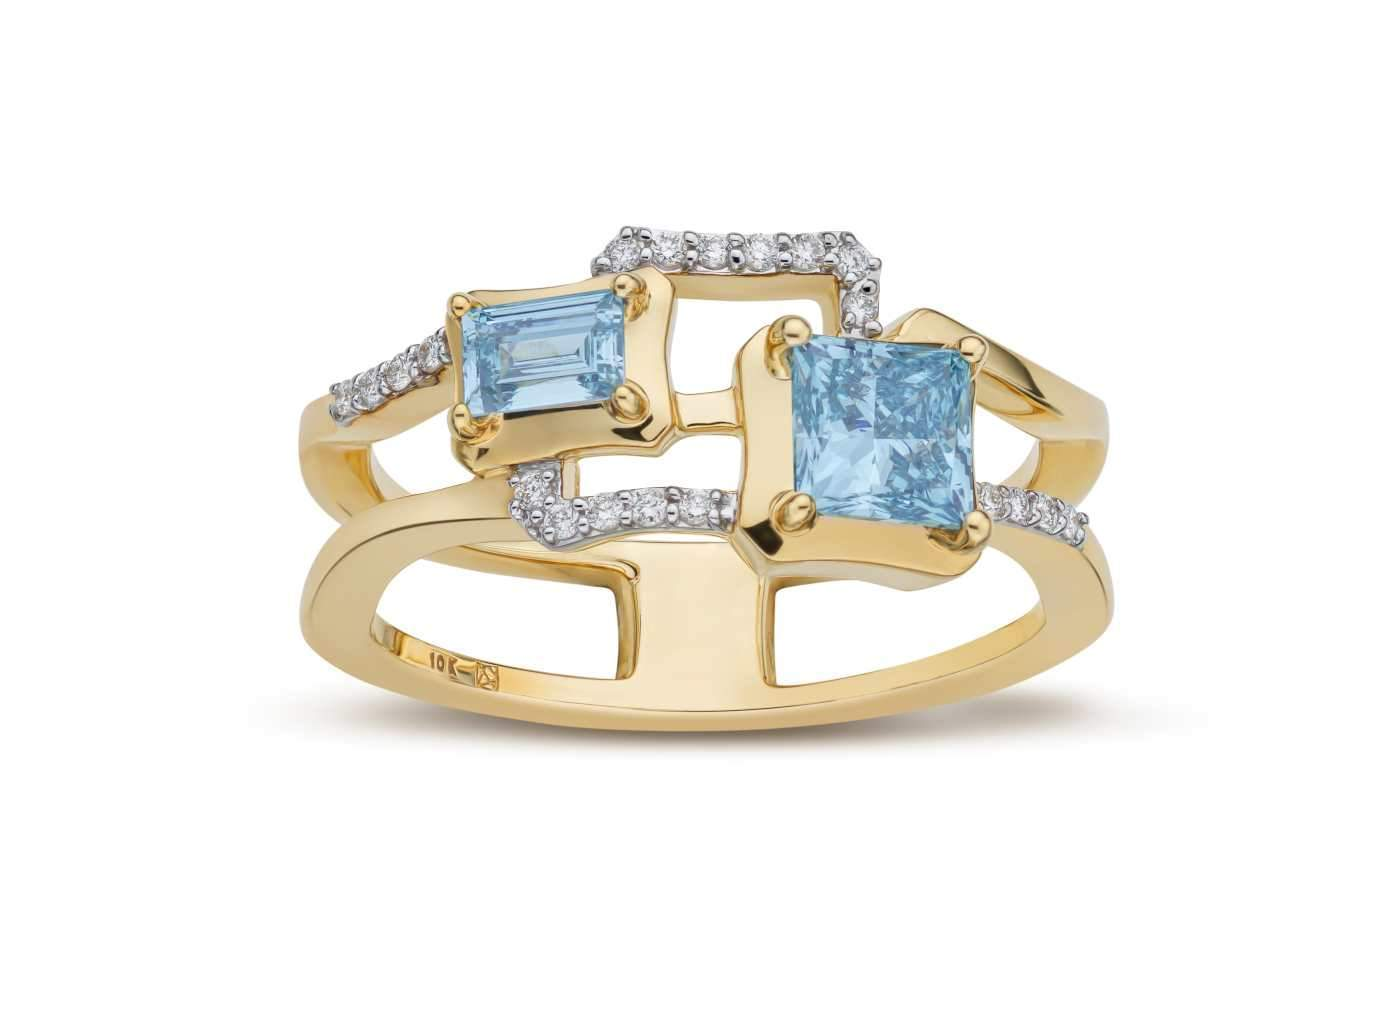 Front view of 2 Stone Frame work Ring with blue and white diamonds